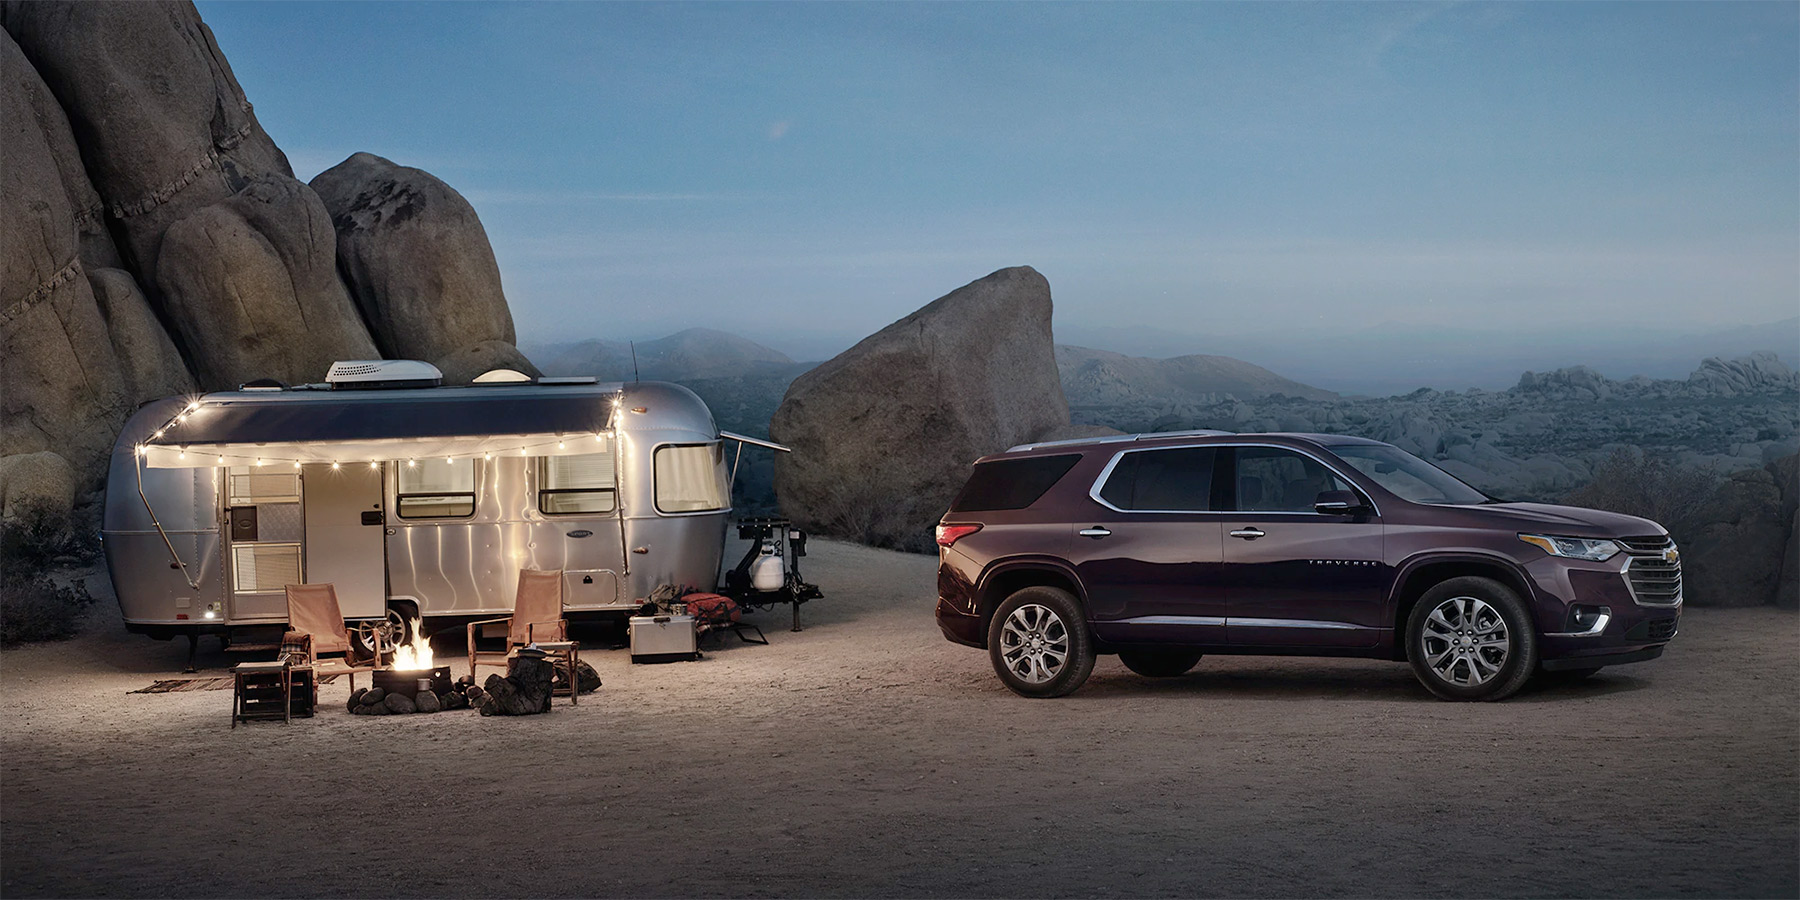 2020 Chevrolet Traverse - With Camper On Moutain